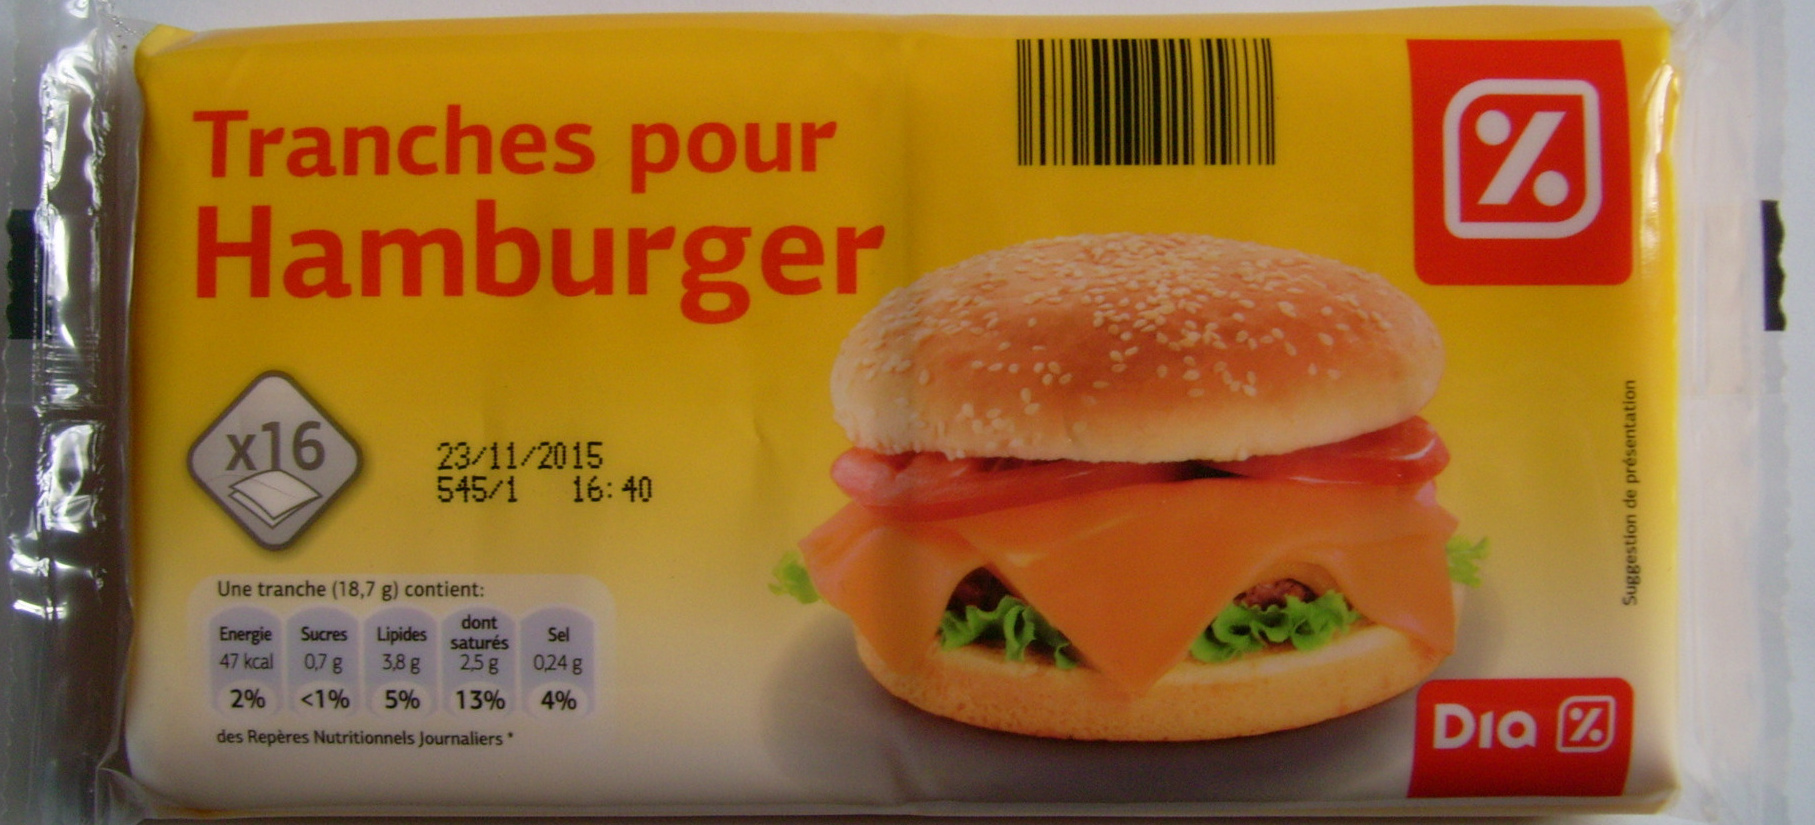 Tranches pour Hamburger - Product - fr